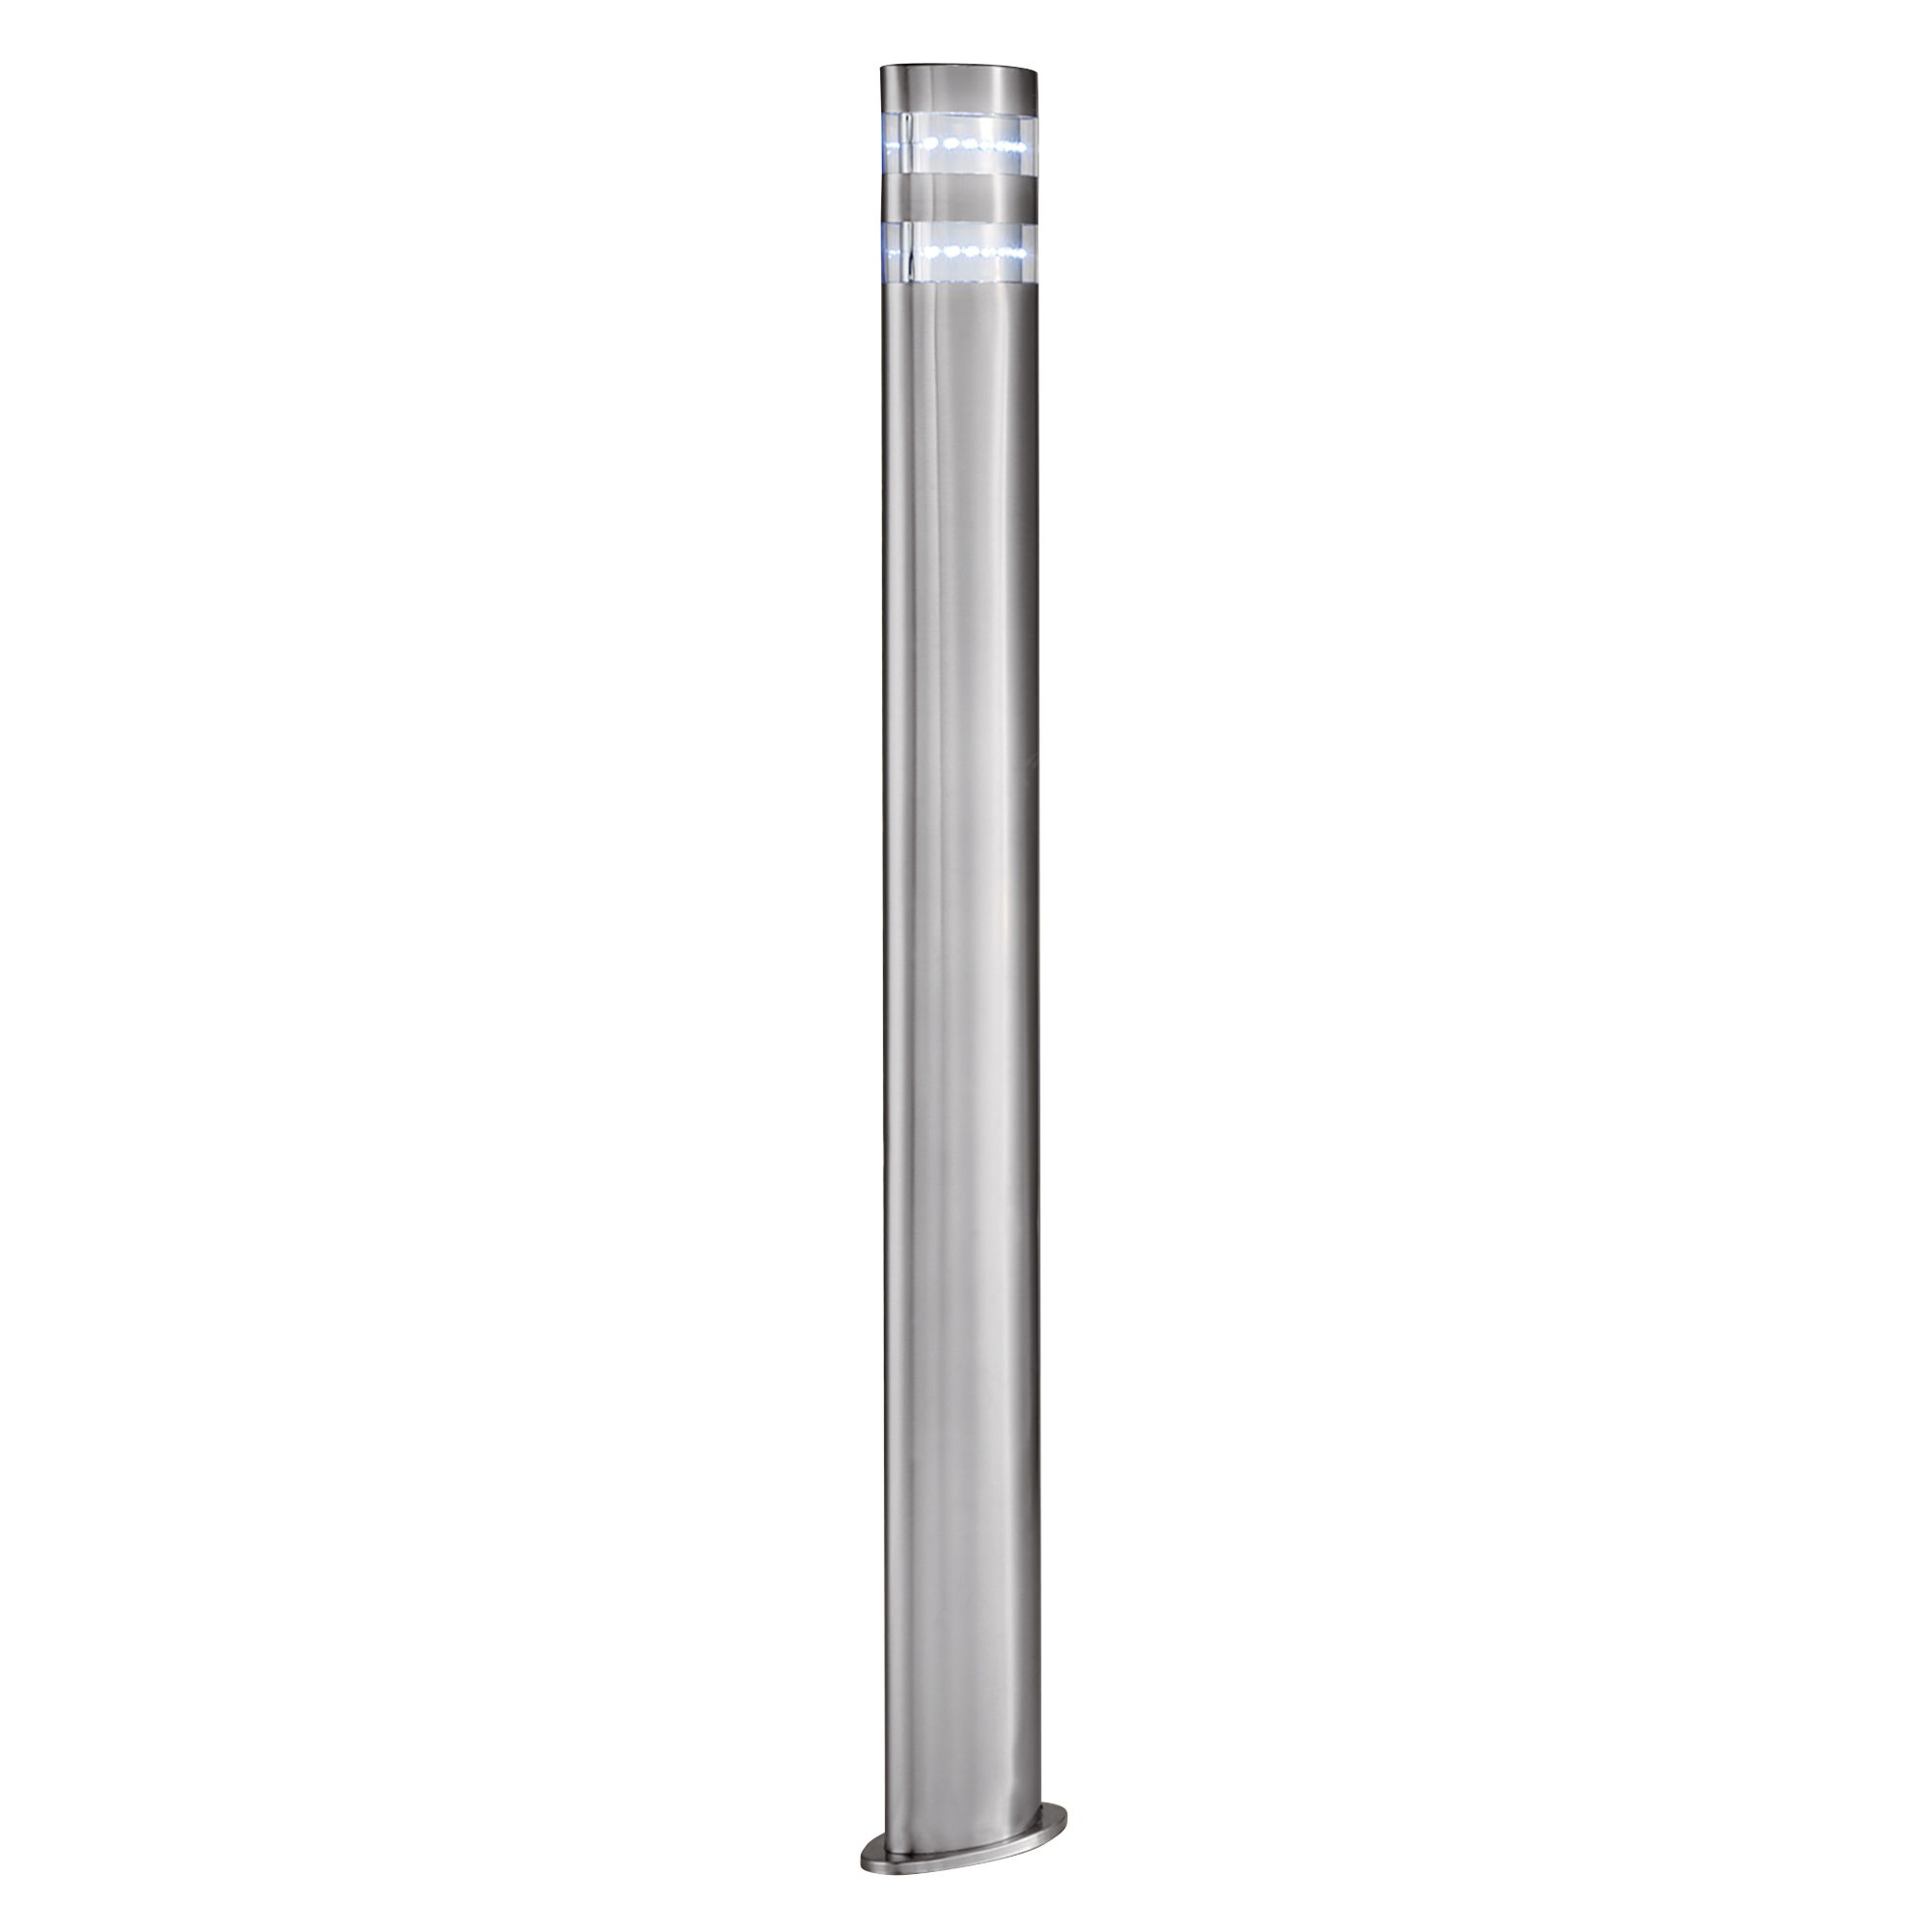 Stainless Steel Ip44 24 Led Outdoor Post Light With Clear Polycarbonate Diffuser